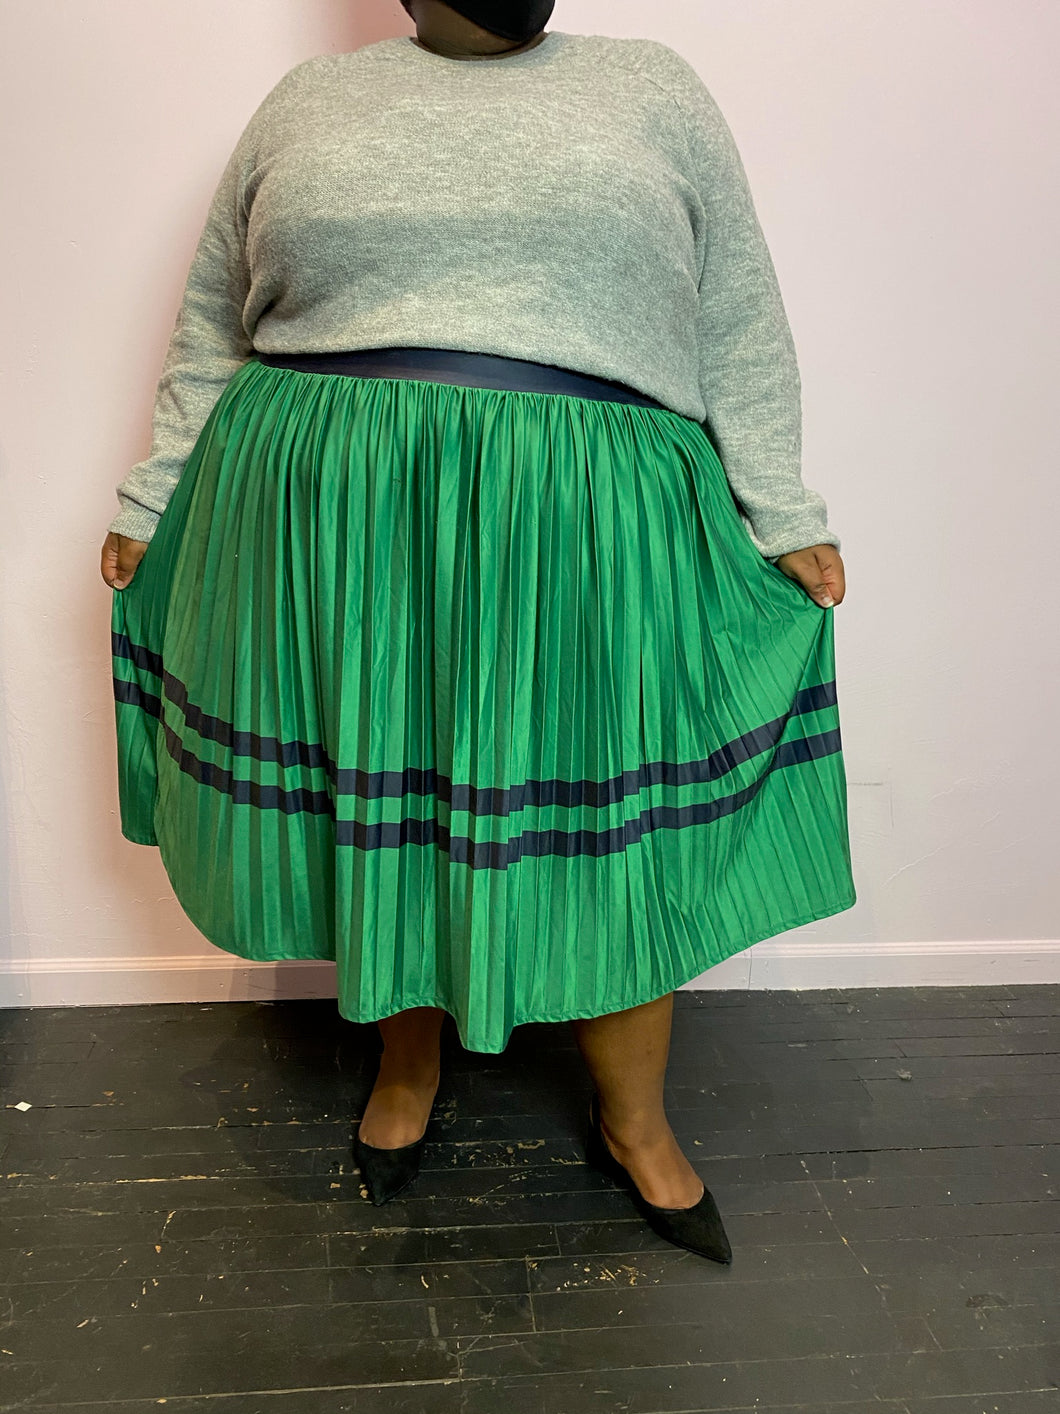 Eloquii Kelly Green Maxi Skirt with Navy Stripes, Size 26/28